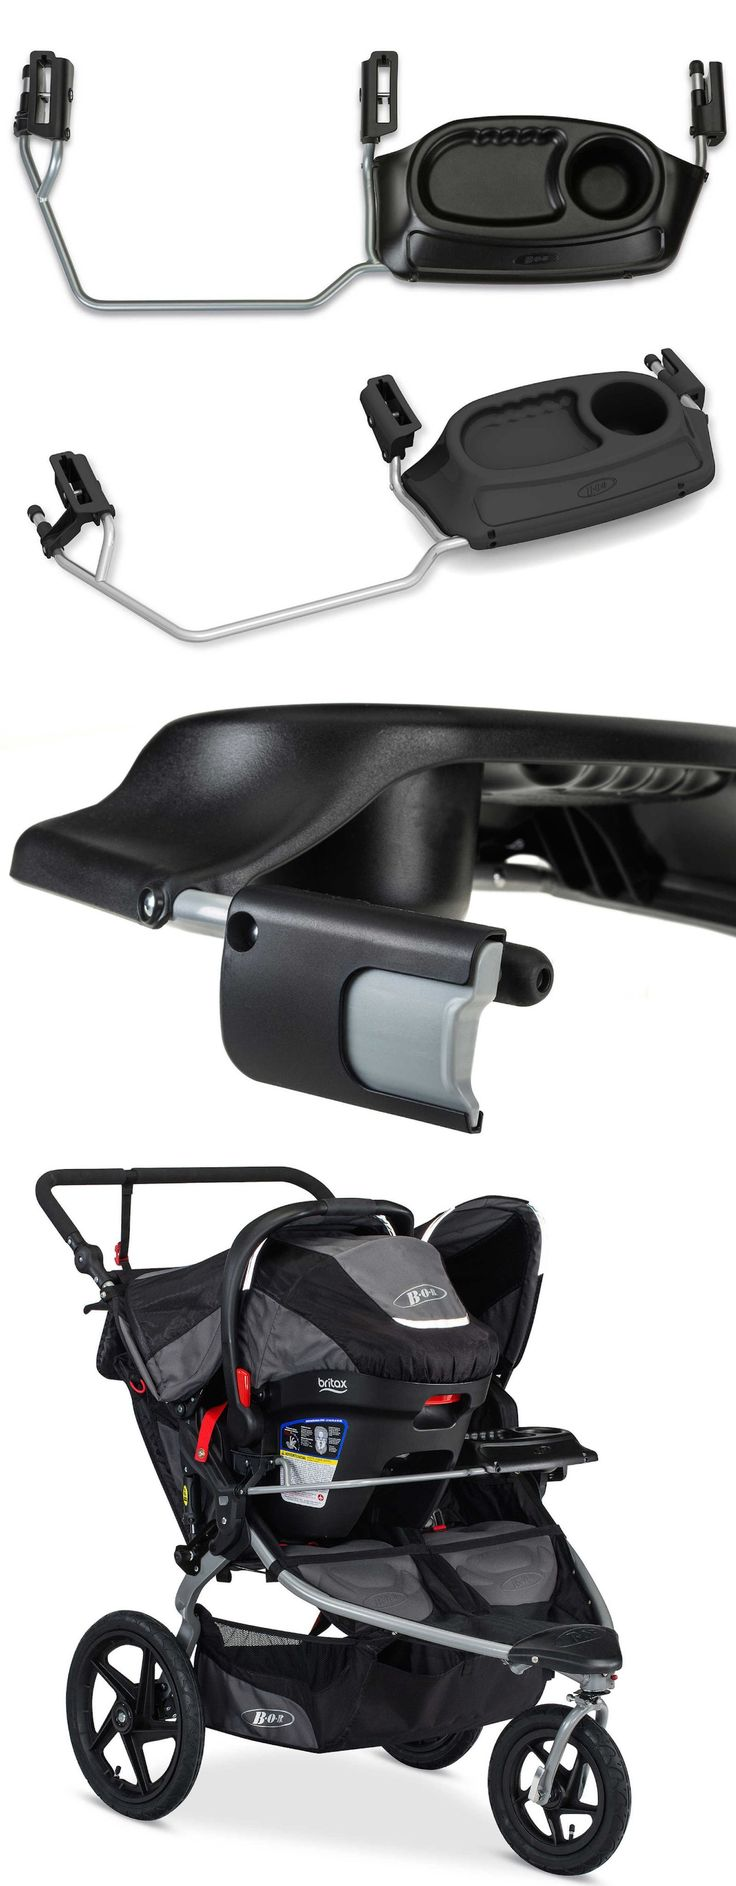 Cup Holders and Snack Trays 180913: Britax Bob Duallie Infant Car Seat Adapter Travel System Snacks Tray Cup Holder -> BUY IT NOW ONLY: $140.99 on eBay!